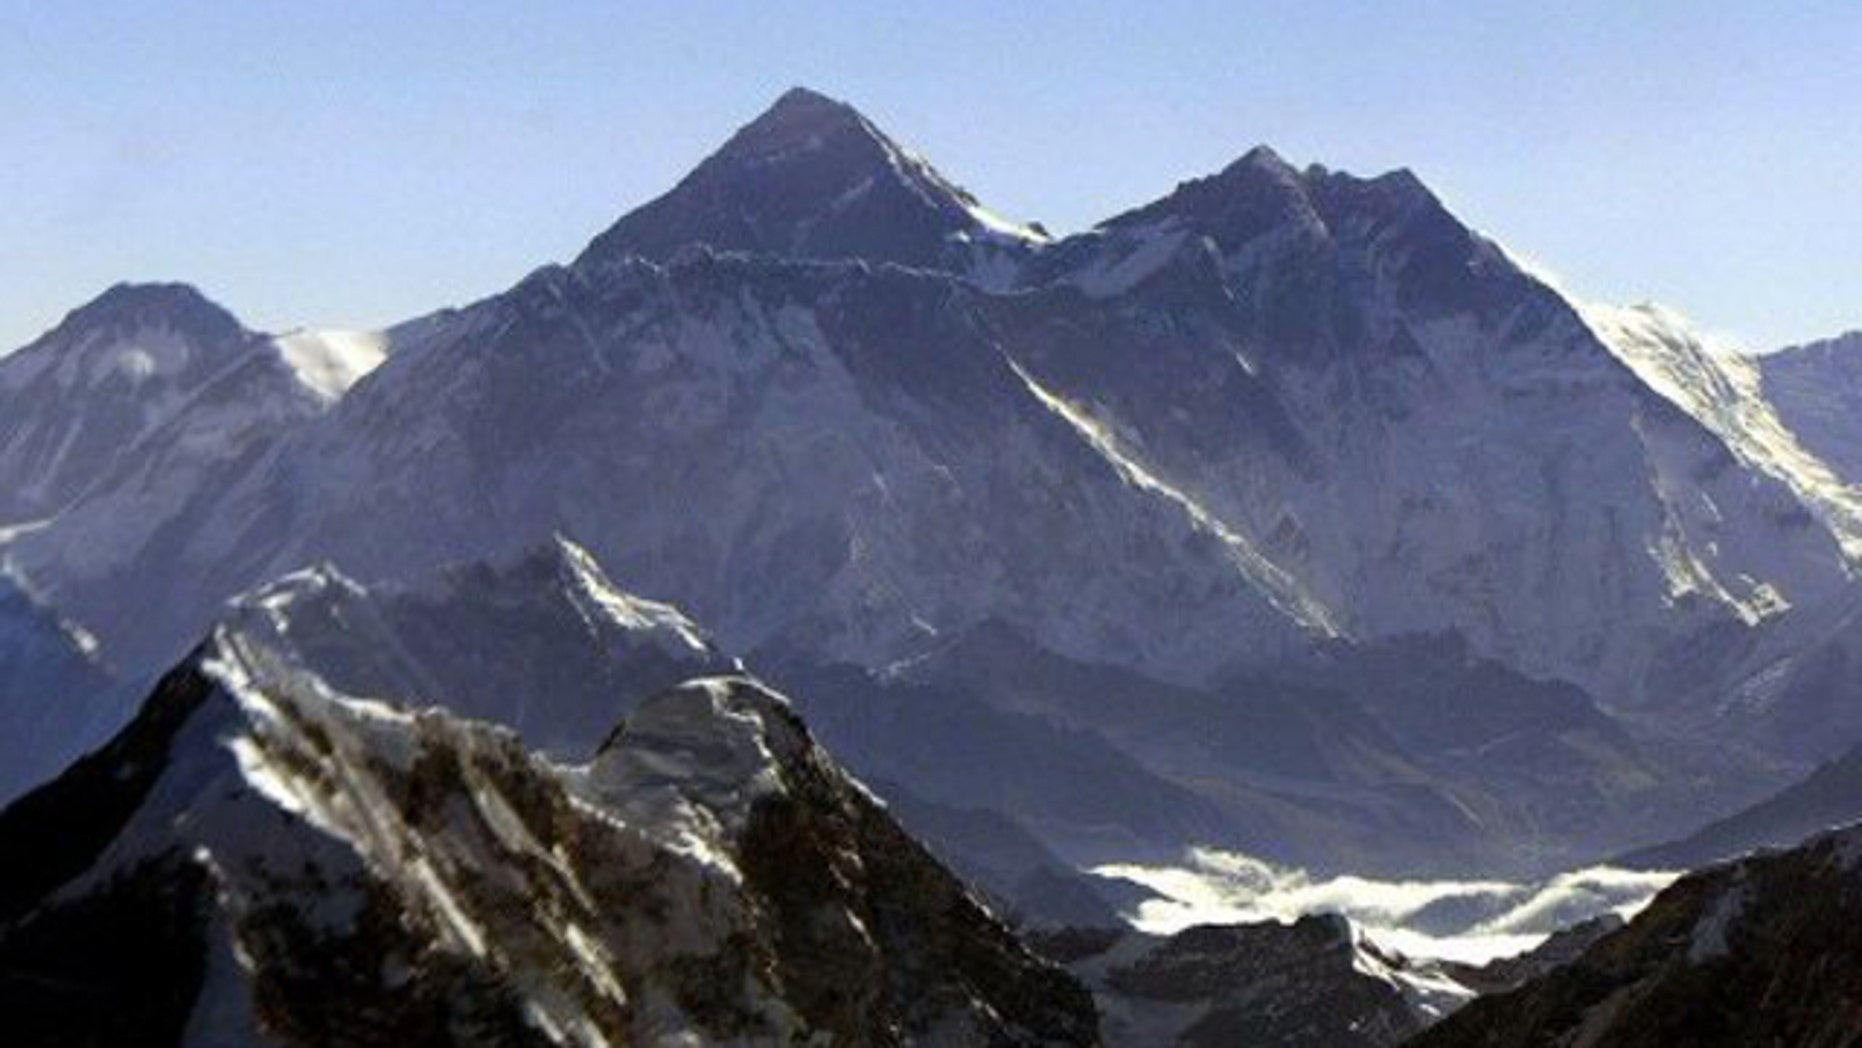 Mount Everest is believed to stand at the height of 8,848 meters (29,029 feet).